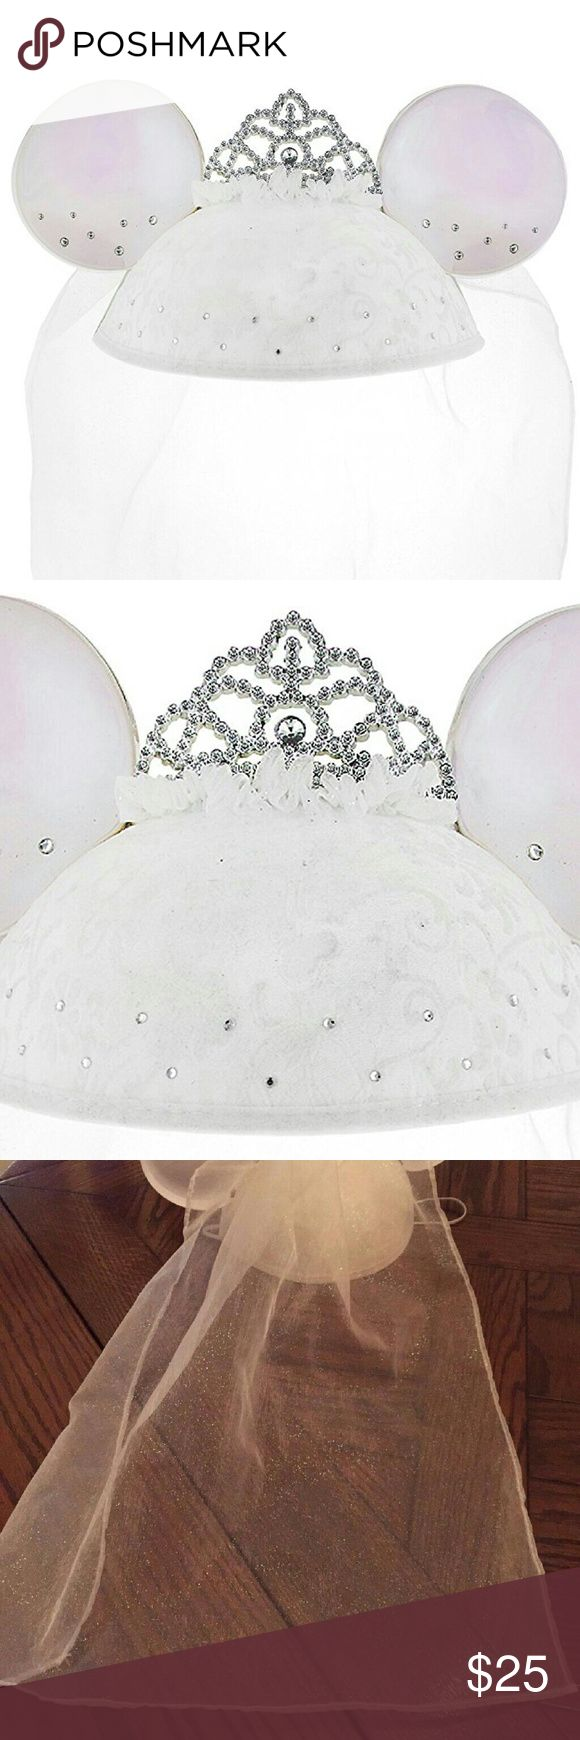 Disney Minnie Mouse Rhinestone Bride Ears Cap Veil Official Exclusive Disney Theme Parks Merchandise! Feel like a Princess as a Disney Bride & make your special day/honeymoon romantic at the park! We literally had over 100 ppl congratulate us while wearing these - and we got freebies! Only worn twice. No damages! LIKE NEW!  Embroidered art. Flocked velvet hat. Rhinestone accents & tiara. Elastic chin strap. Glittery veil. Polyester w/plastic ears.   **Pictured Mickey Mouse Ears Groom Top Hat…